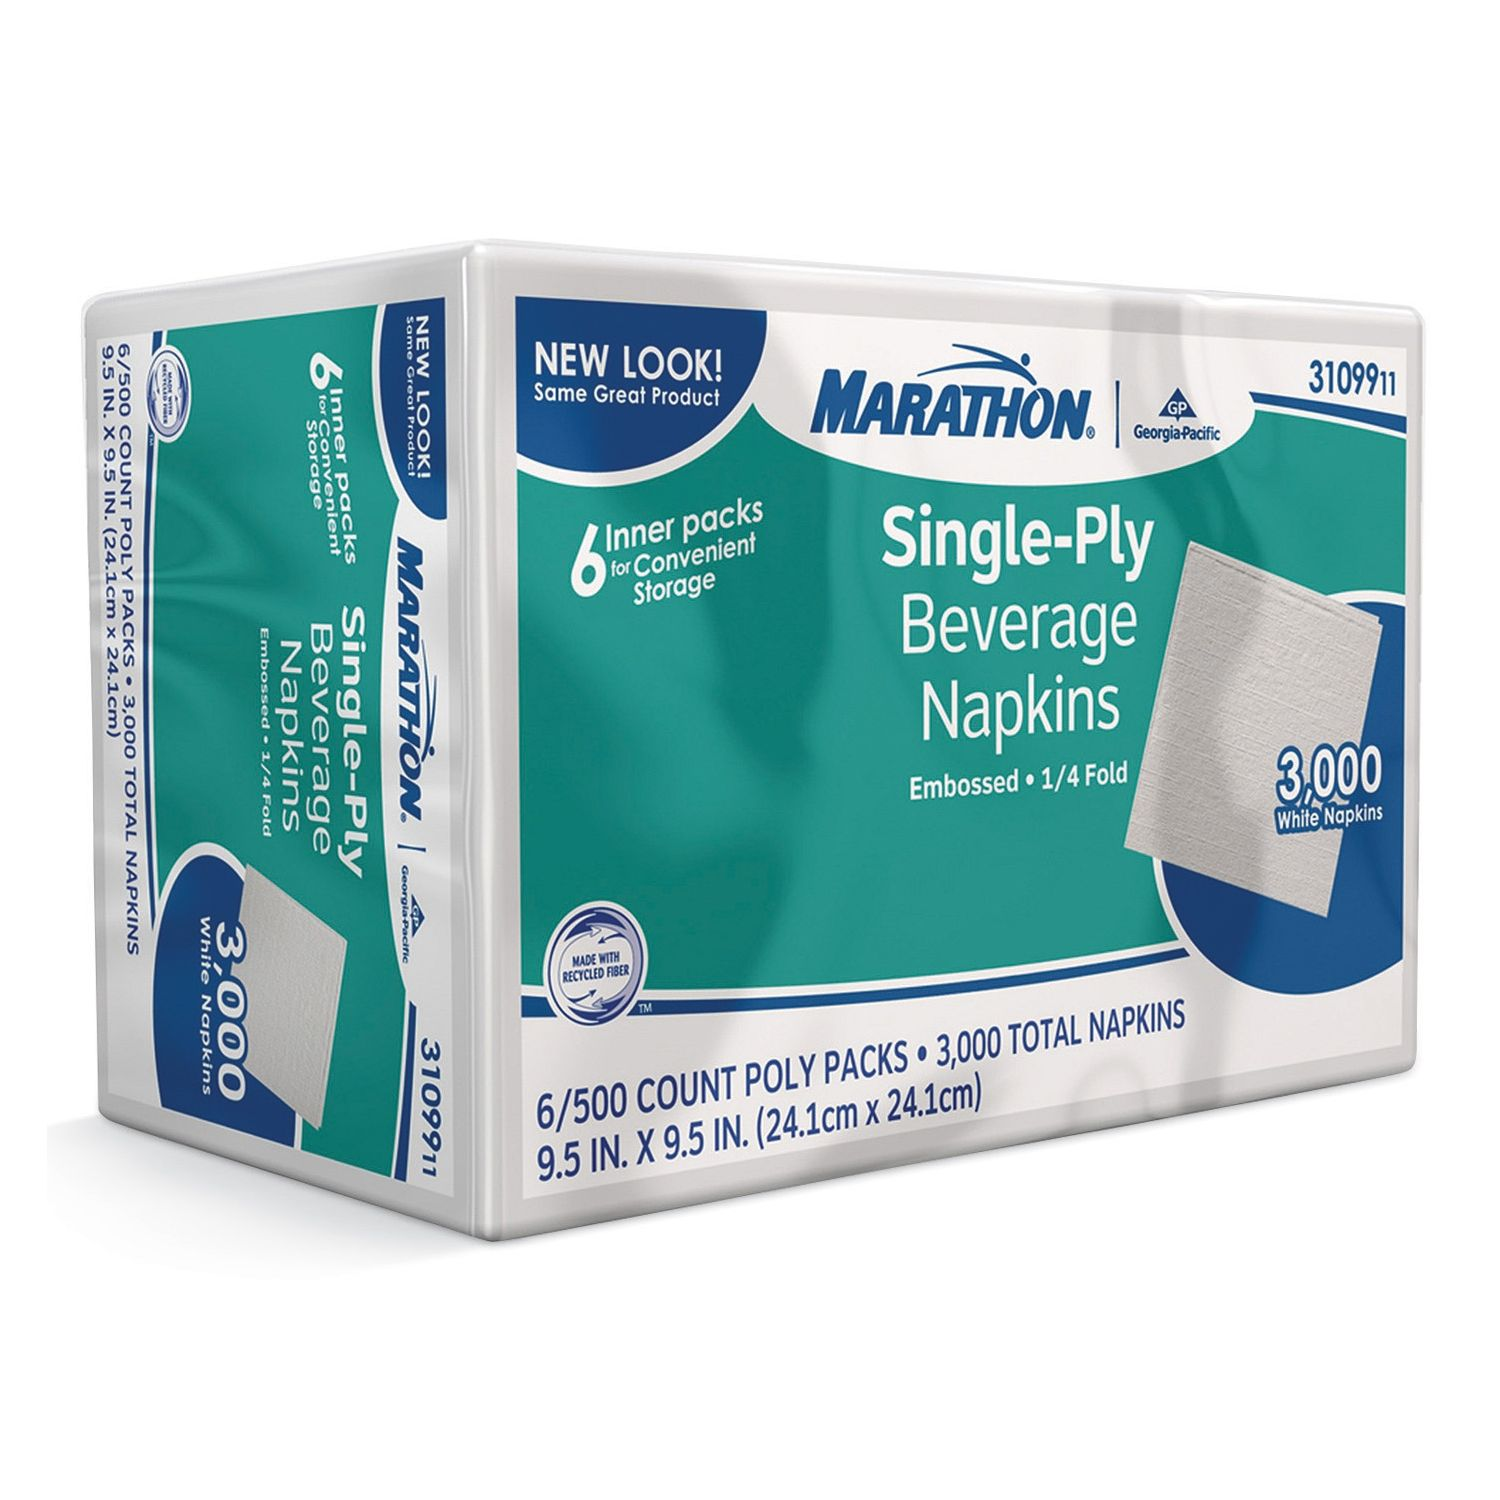 Marathon Beverage Napkins - 3,000 ct.